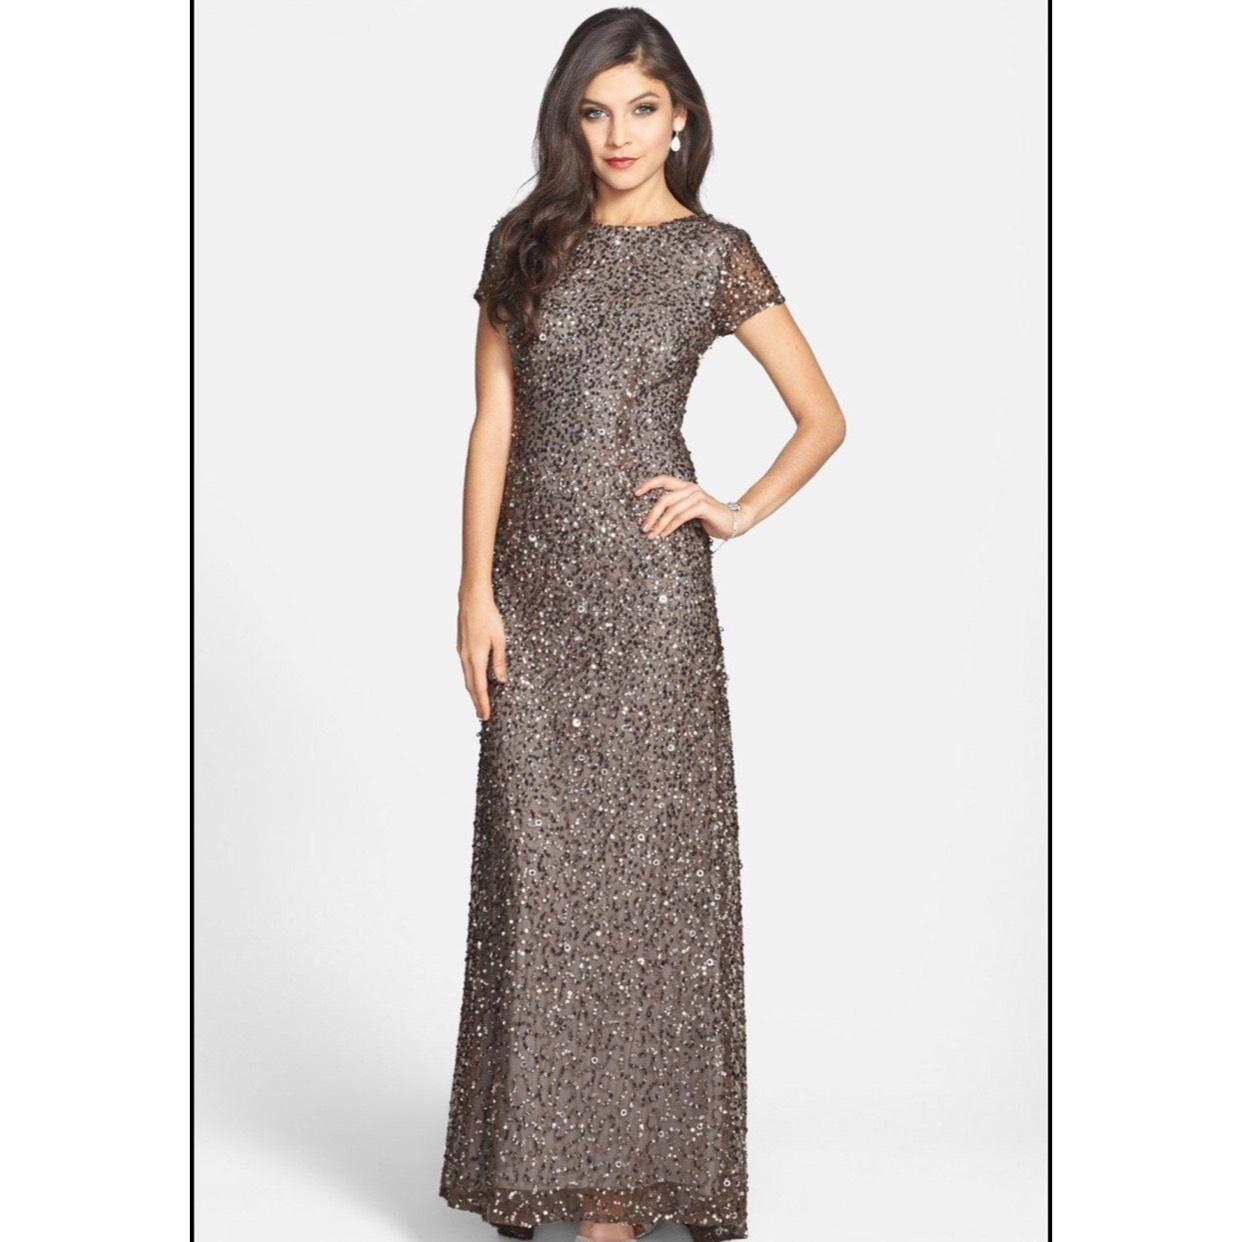 Adrianna Papell Lead Scoop Back Sequin Gown 09187460 Dress on Tradesy